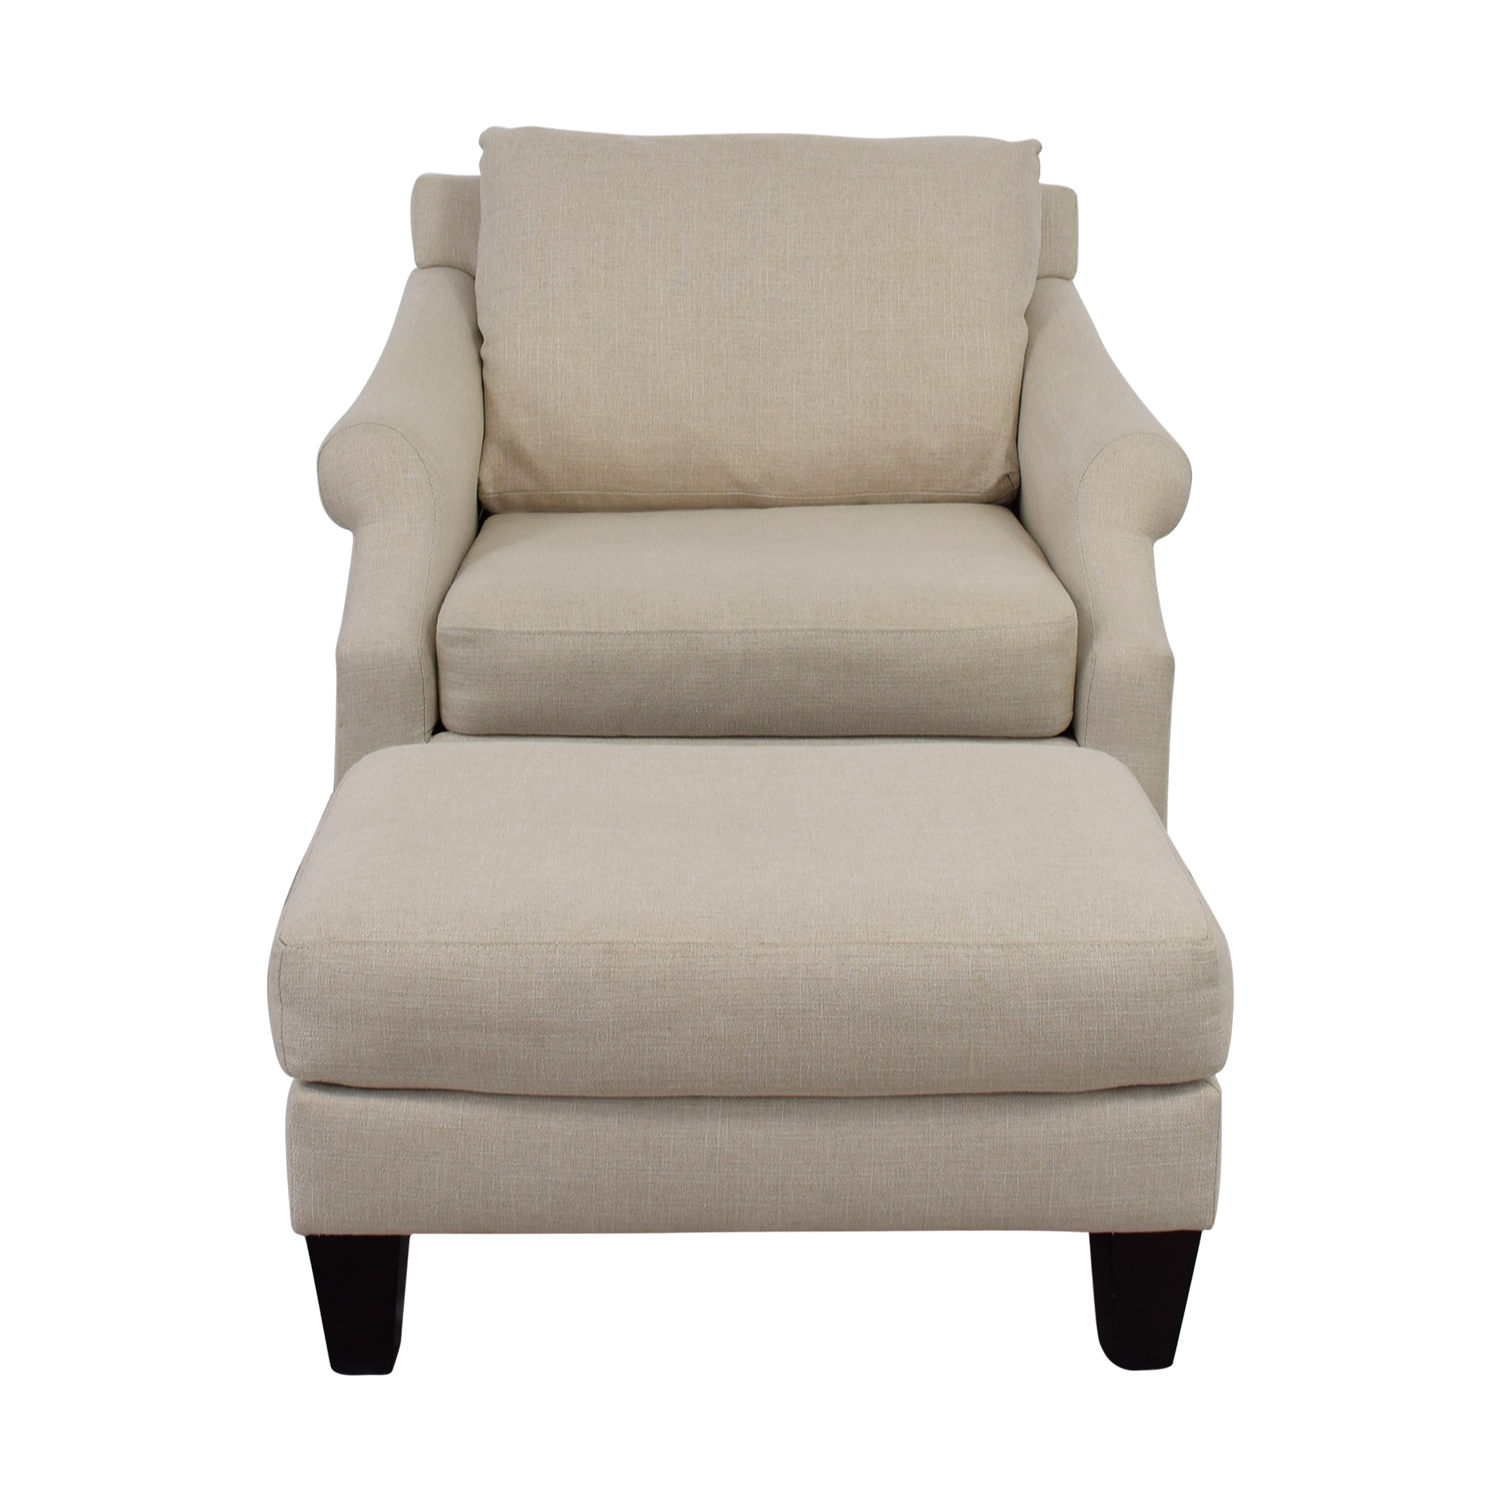 Raymour & Flanigan Raymour & Flanigan Beige Love Chair and Ottoman